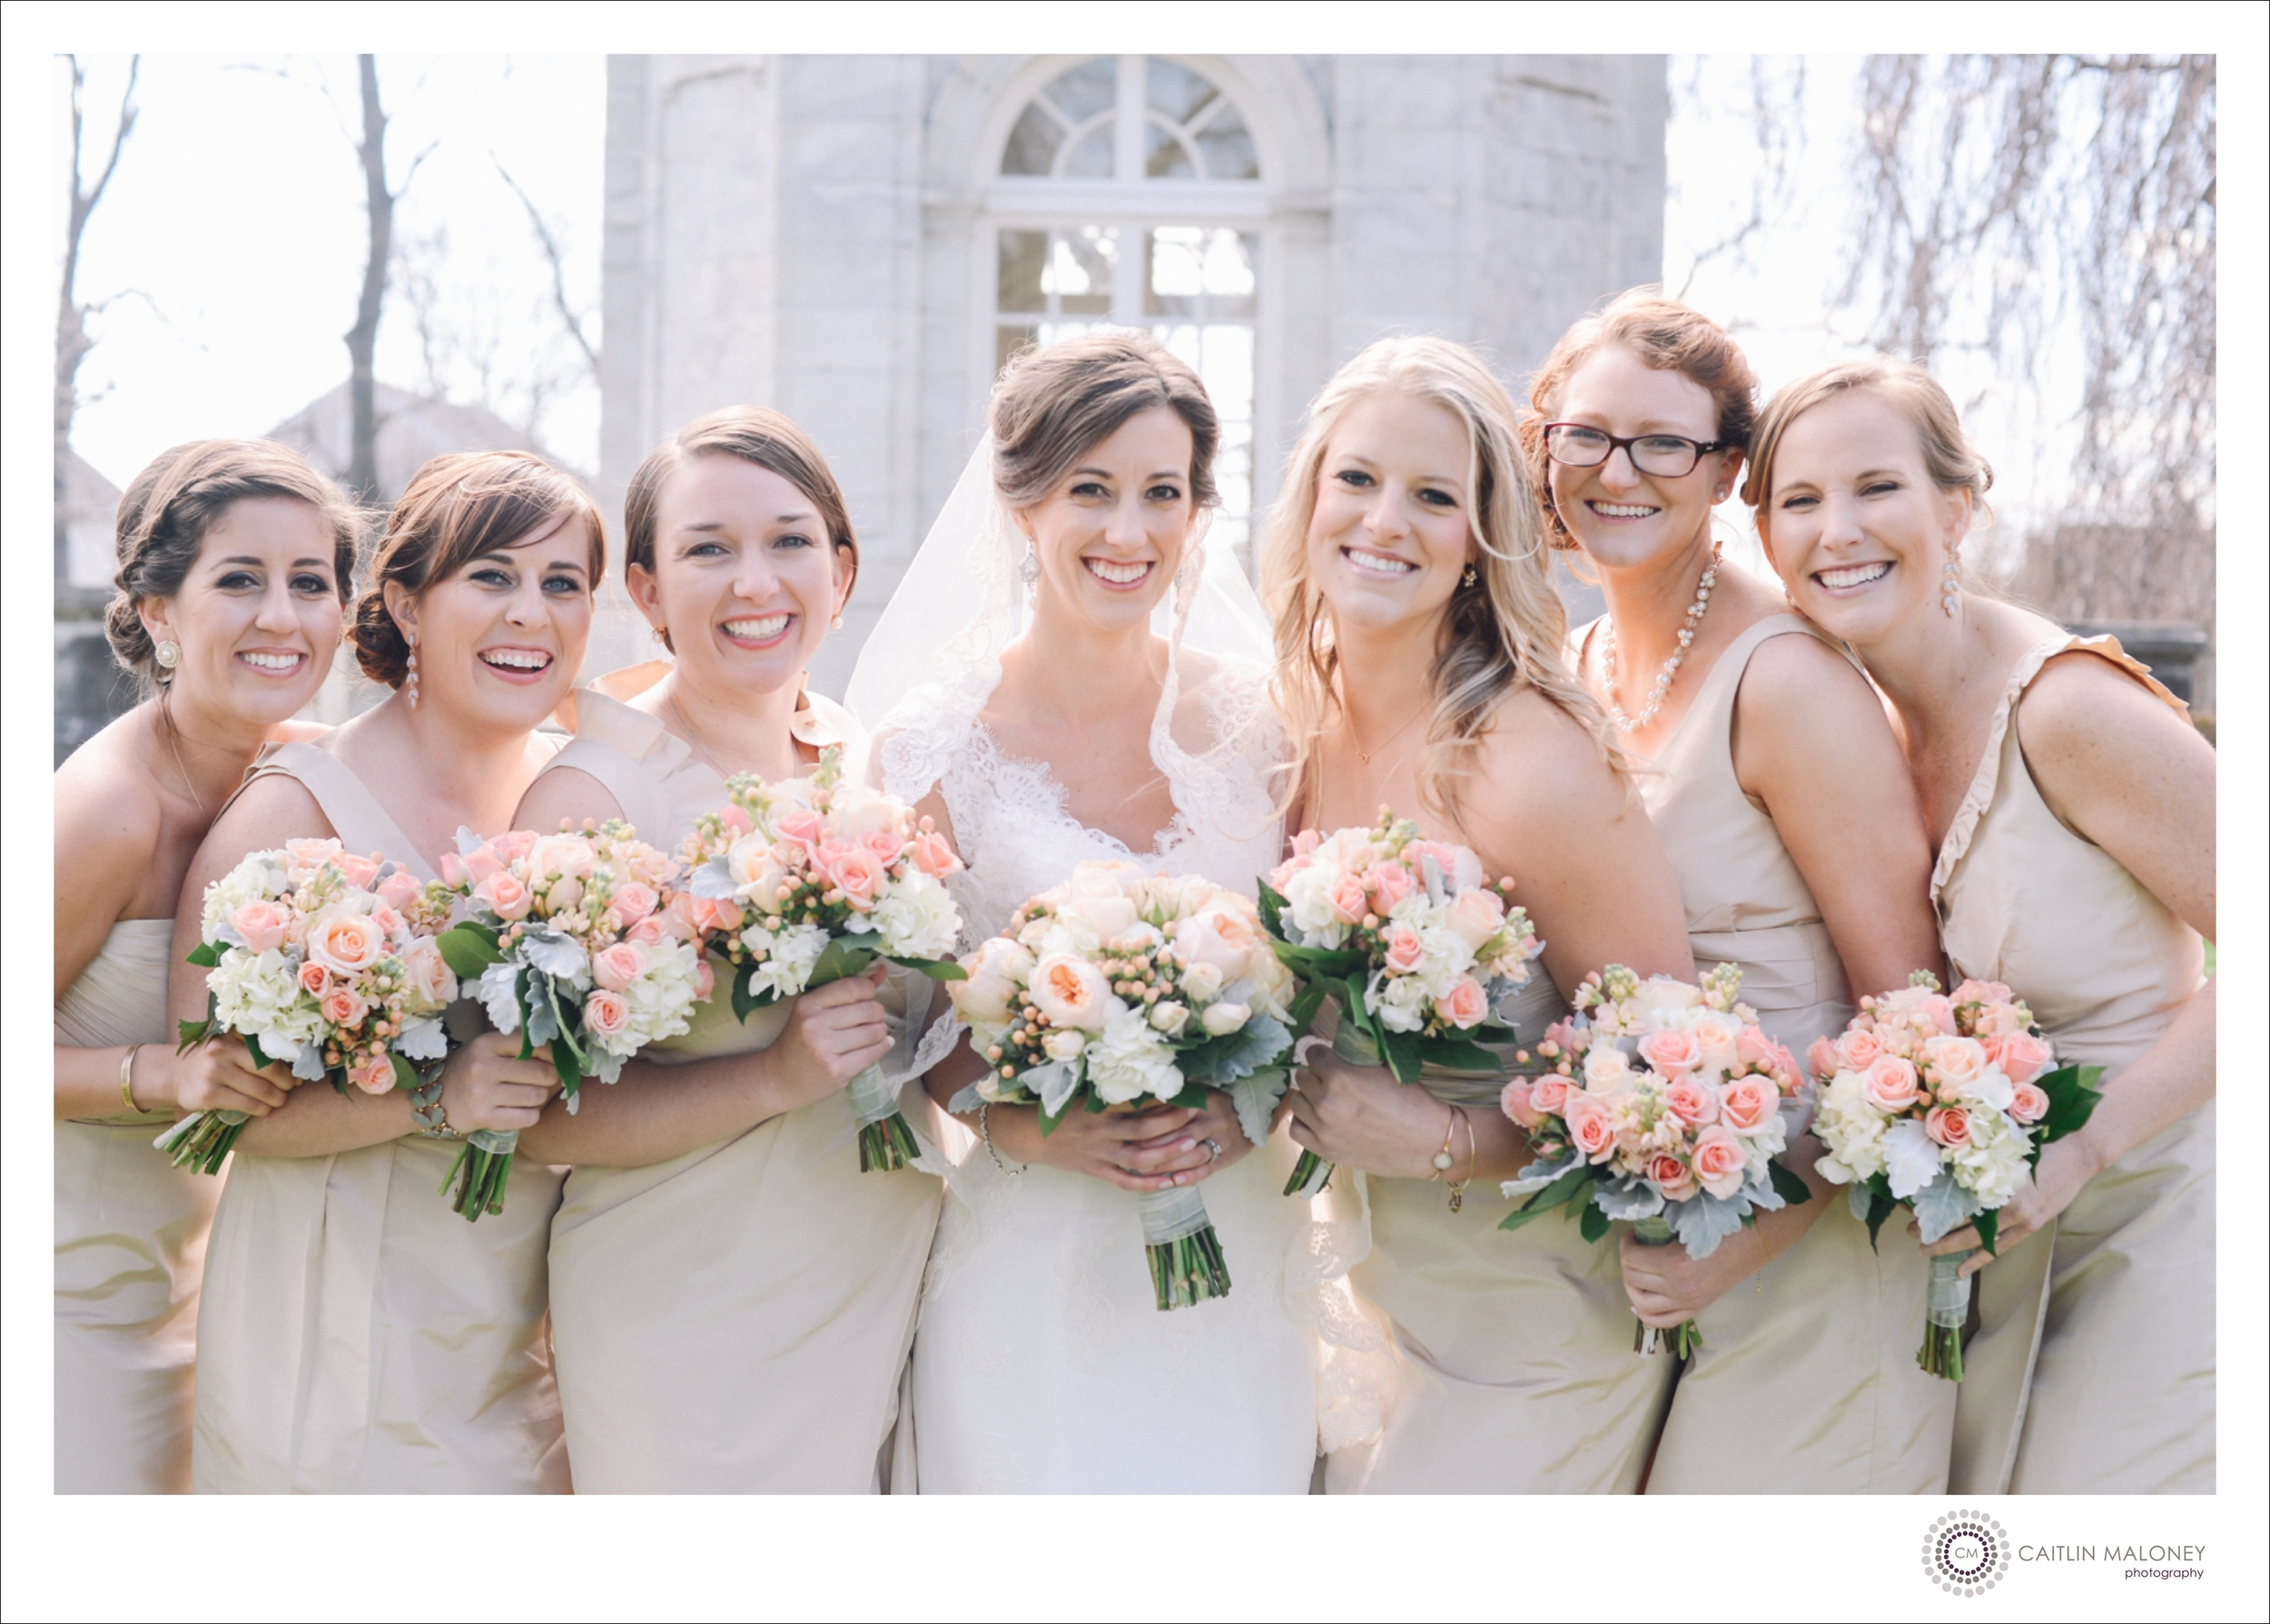 Lansing_MI_Wedding_Photographer_020.jpg